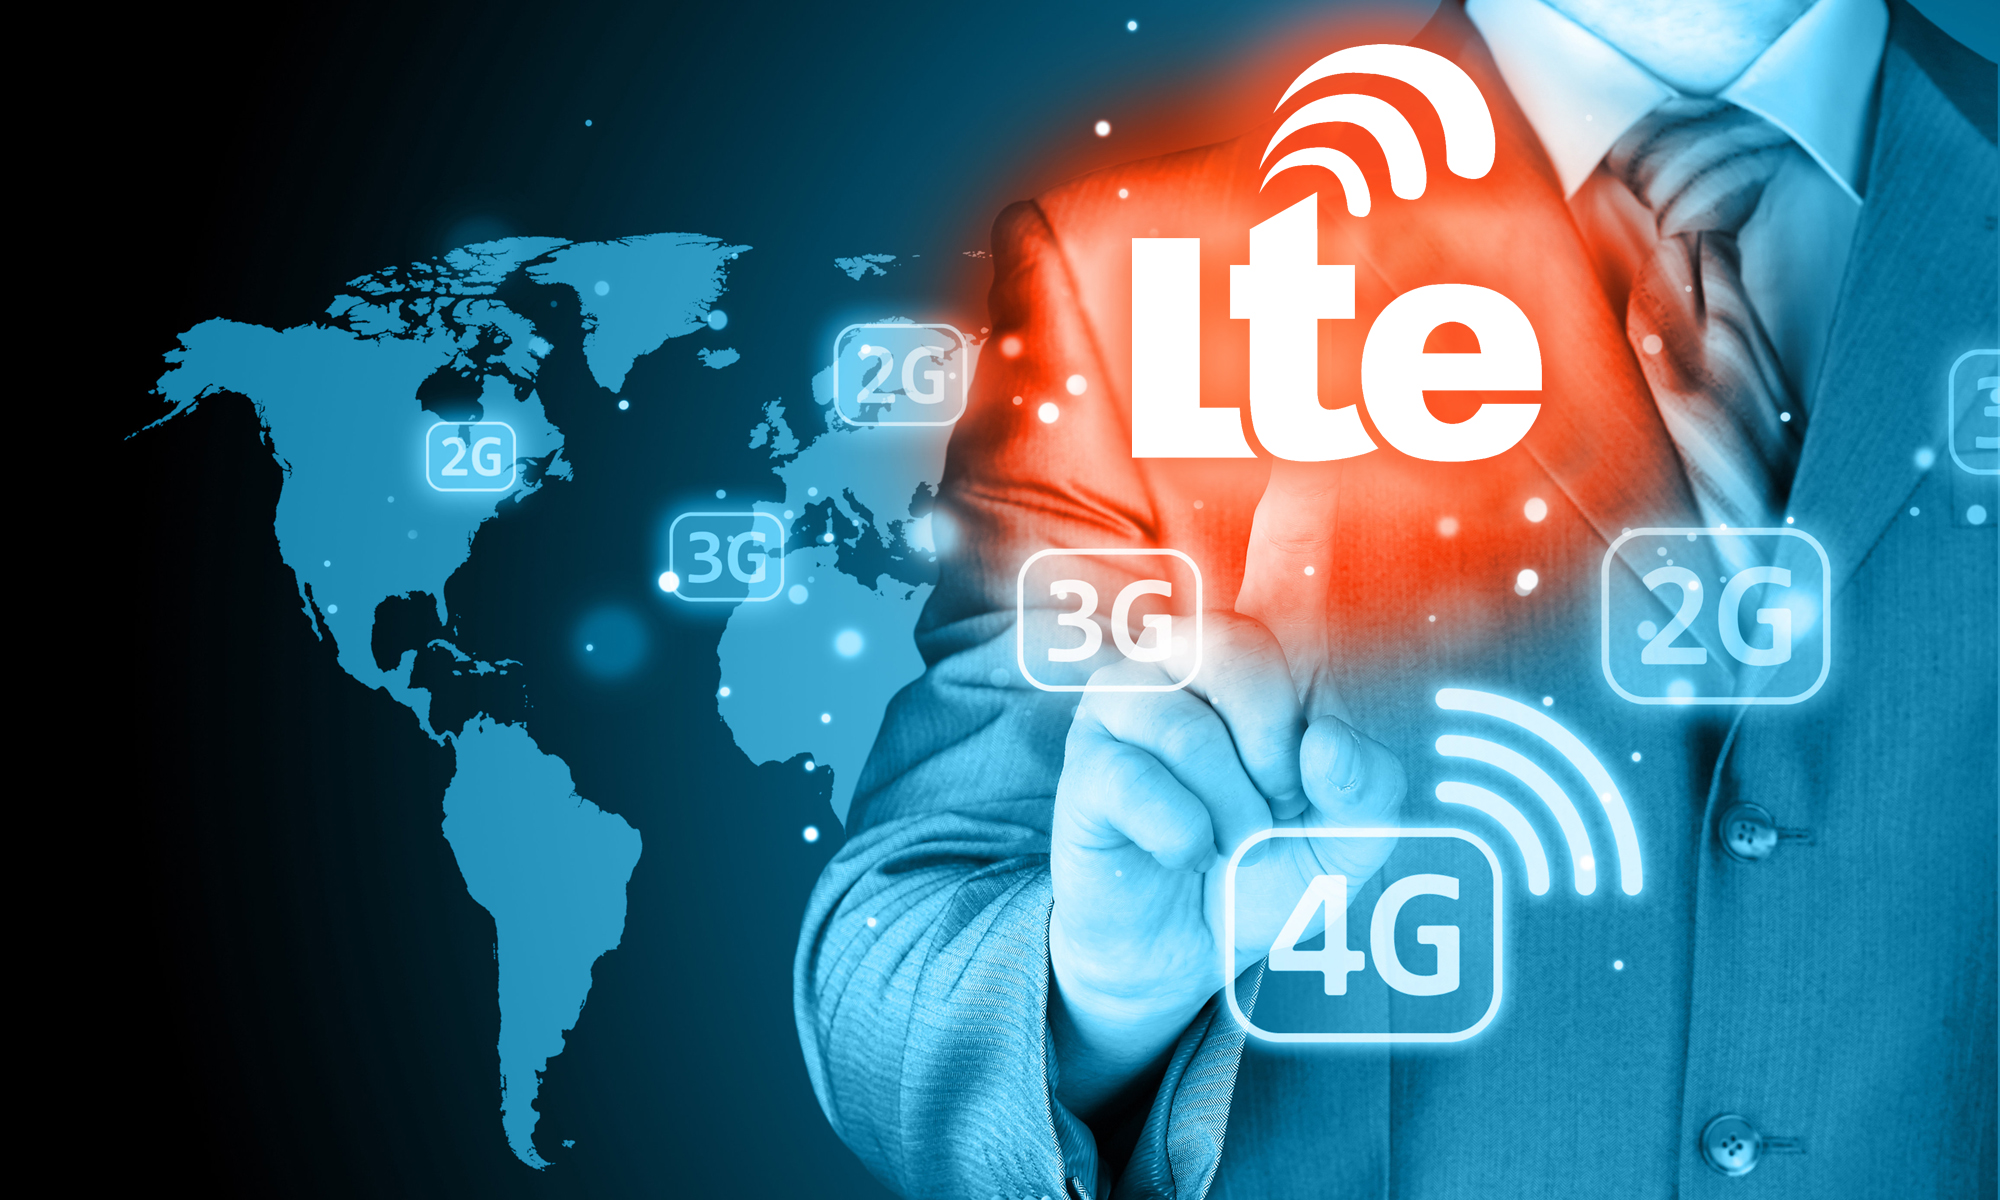 4 g technology Lte from 4g defined by 3pp will evolve to 6g future wireless technologies for mobile broadband future applications and technologies will be integrated when they achieve maturity for 6g, one.